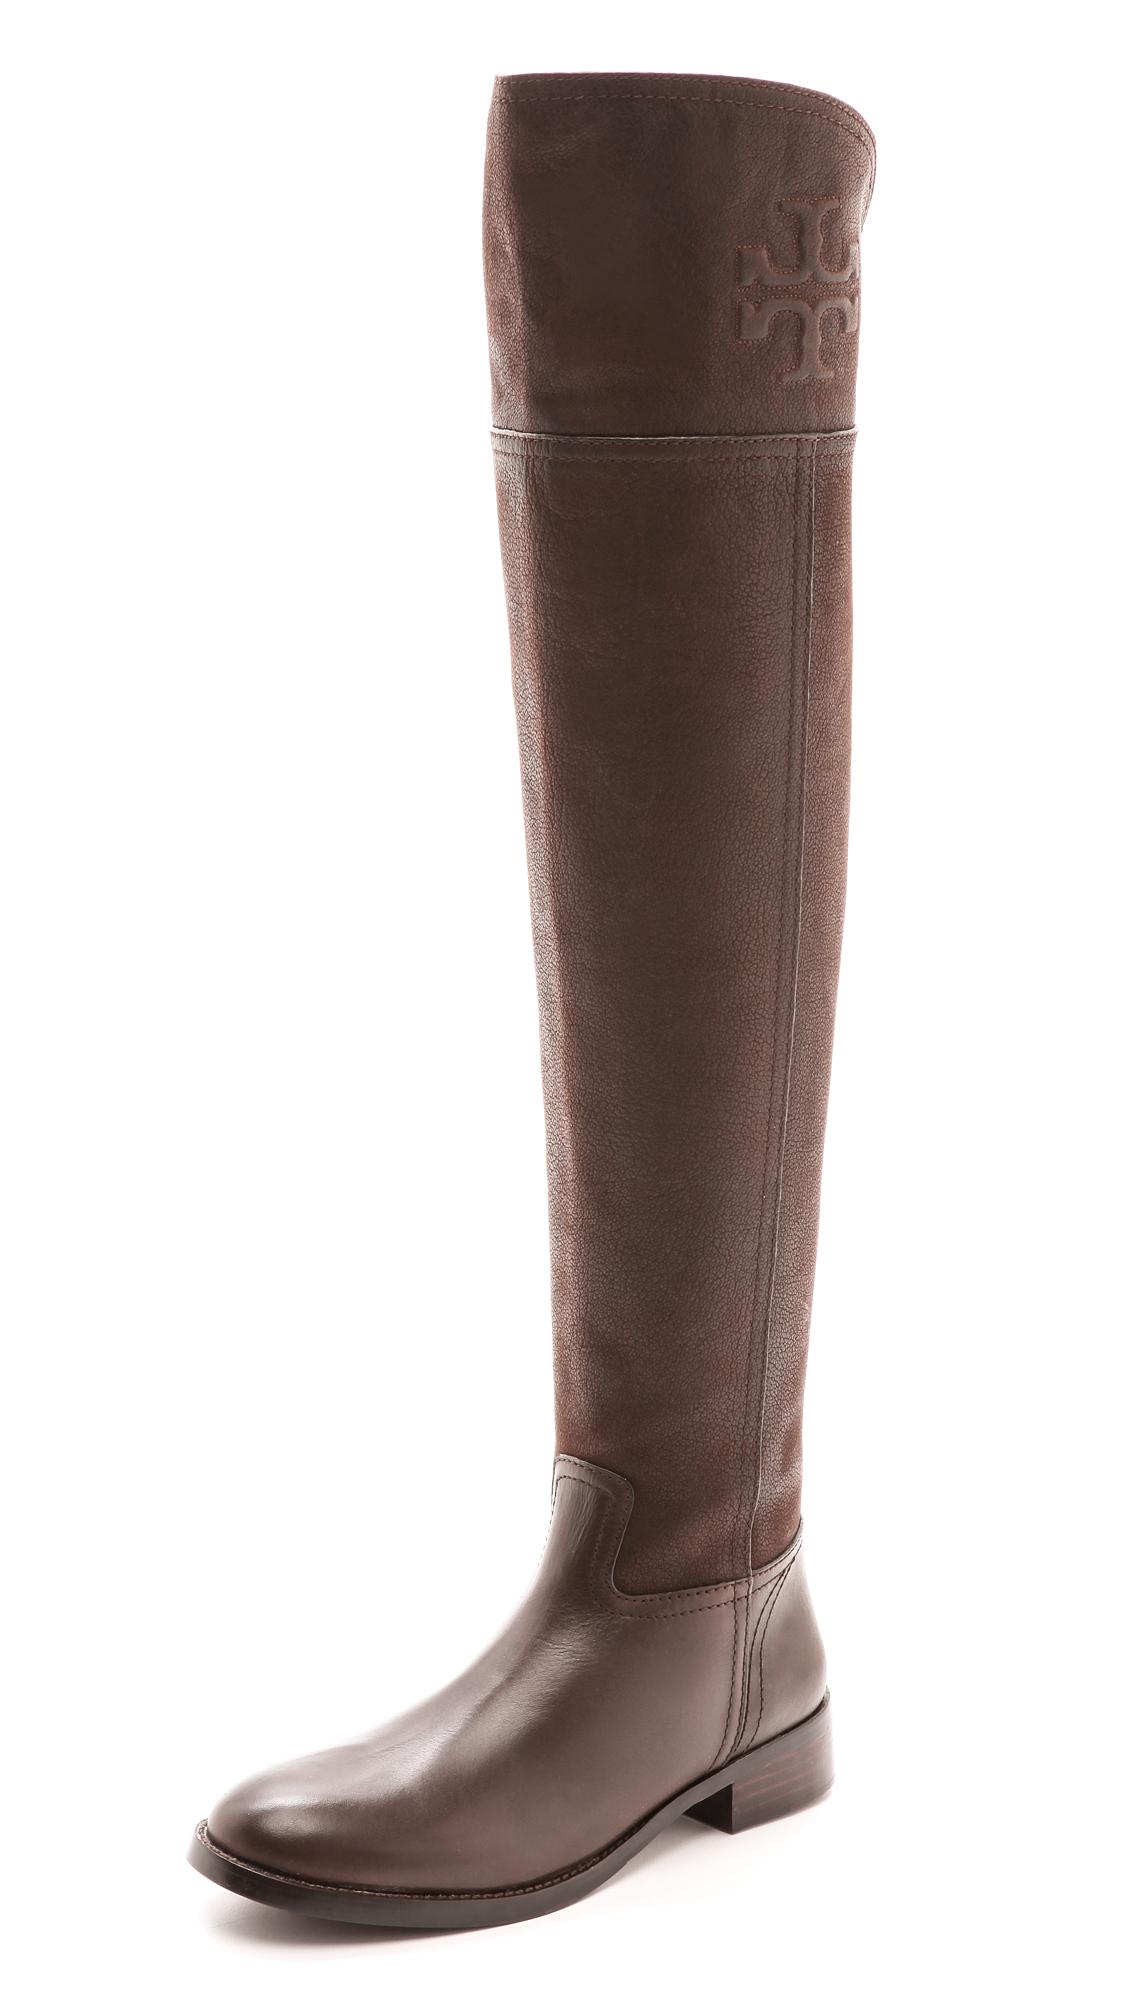 3b4e34636 Lyst - Tory Burch Simone Over The Knee Flat Boots Black in Brown